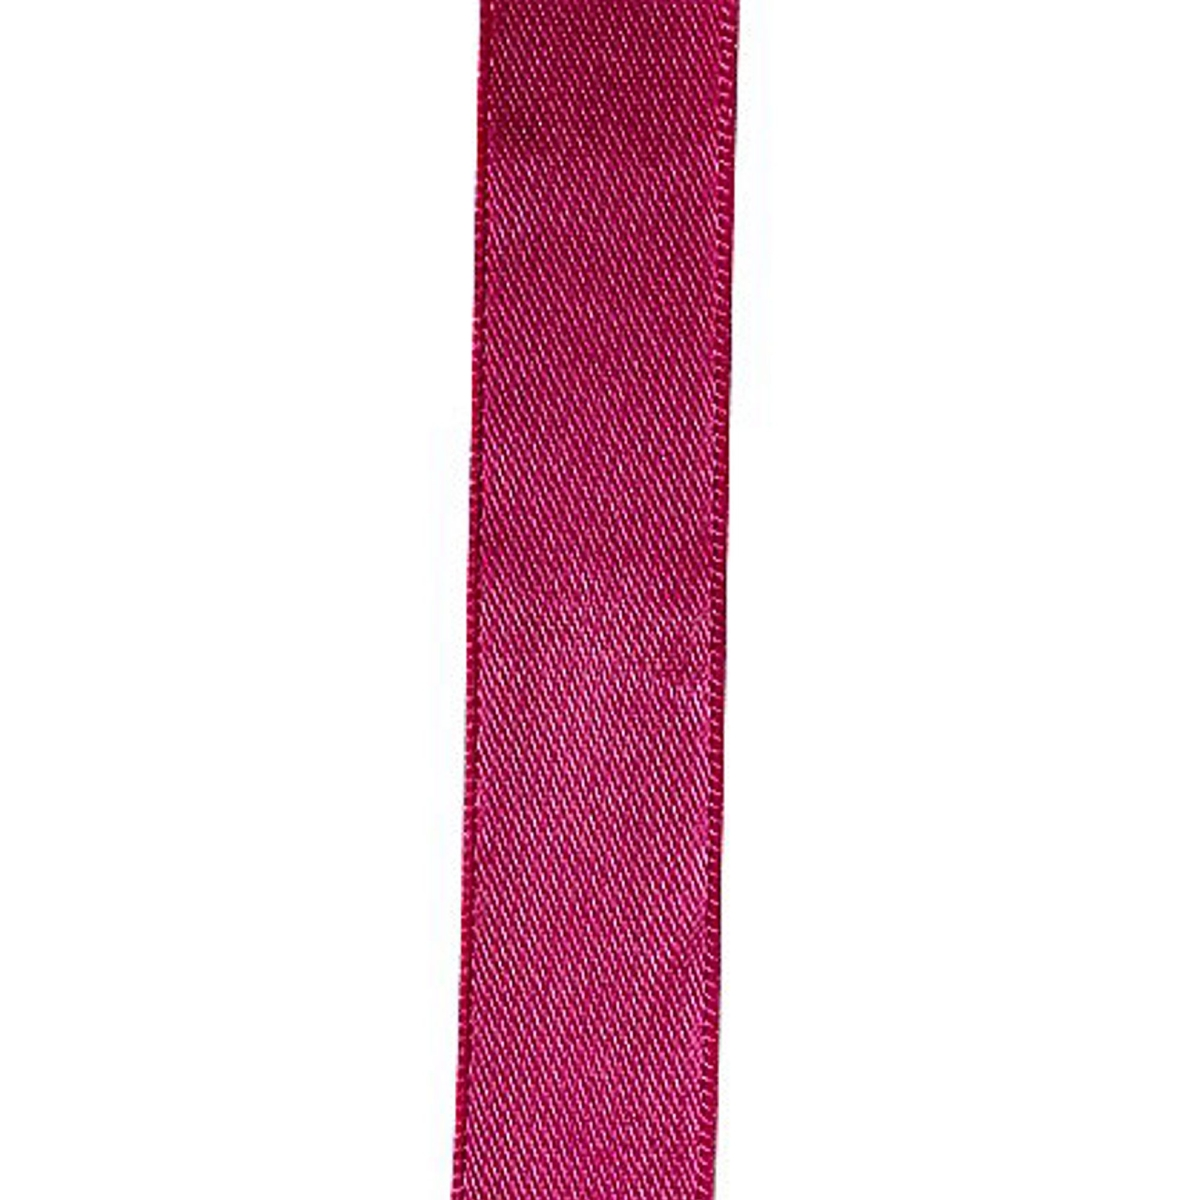 Satinband 6 mm 9 m fuchsia